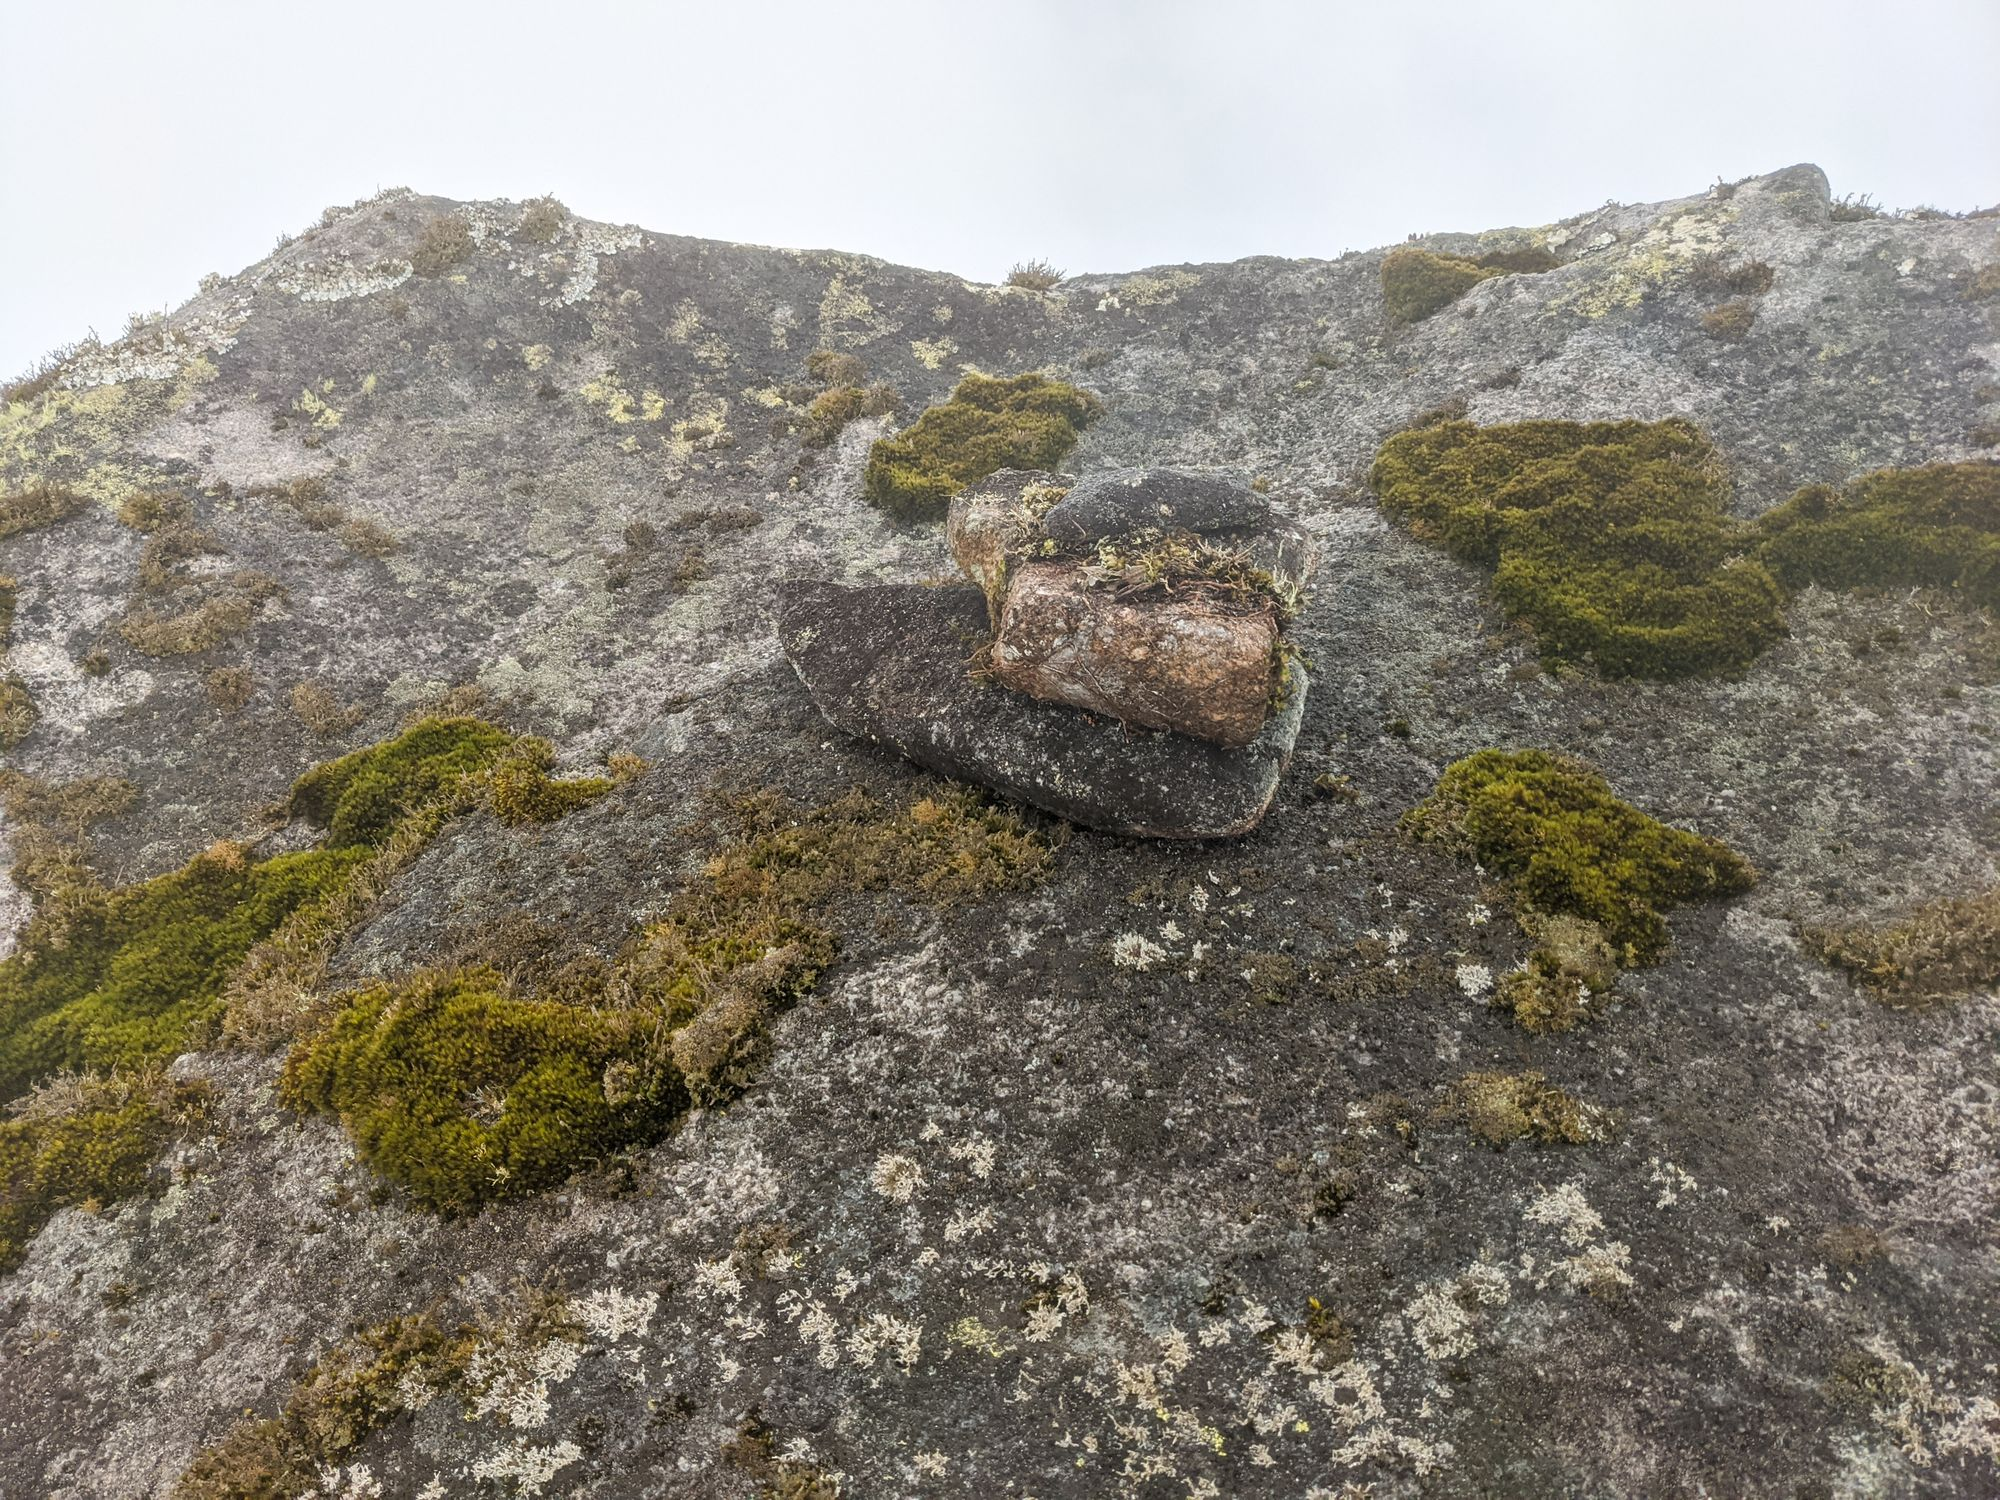 South Peak rock cairn